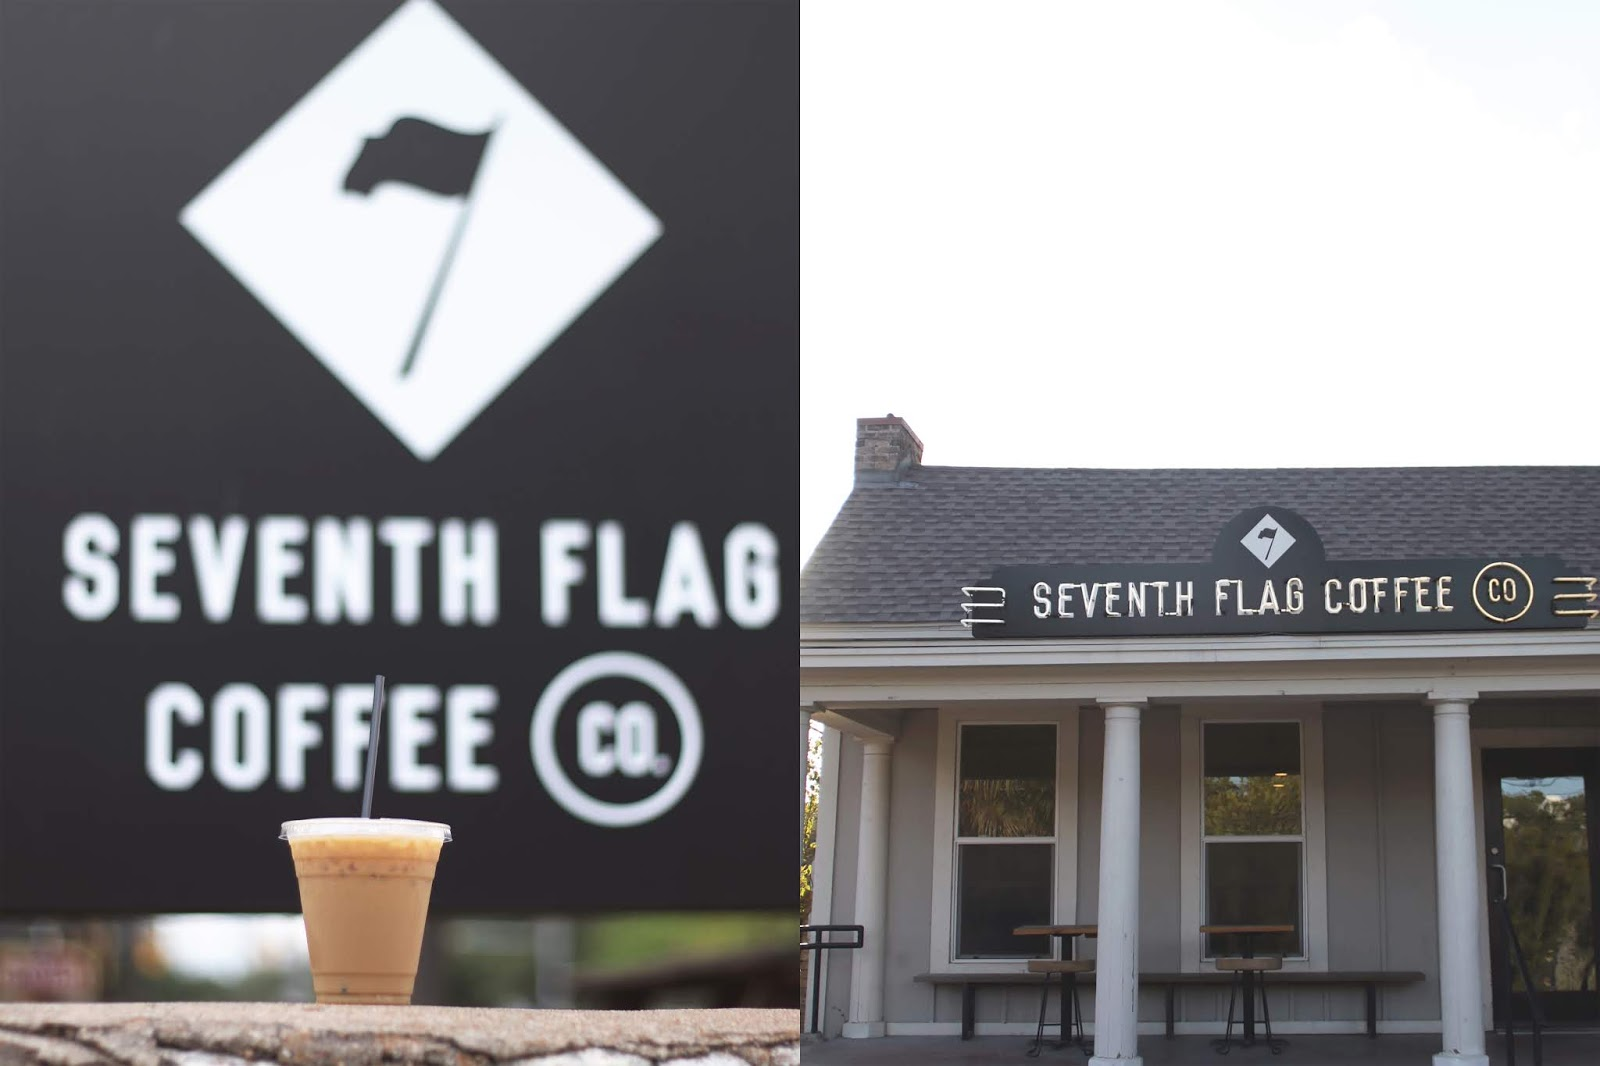 Seventh Flag Coffee Company Austin, Iced Coffee, Cozy Coffee Shop, Coffee Shops Vibe